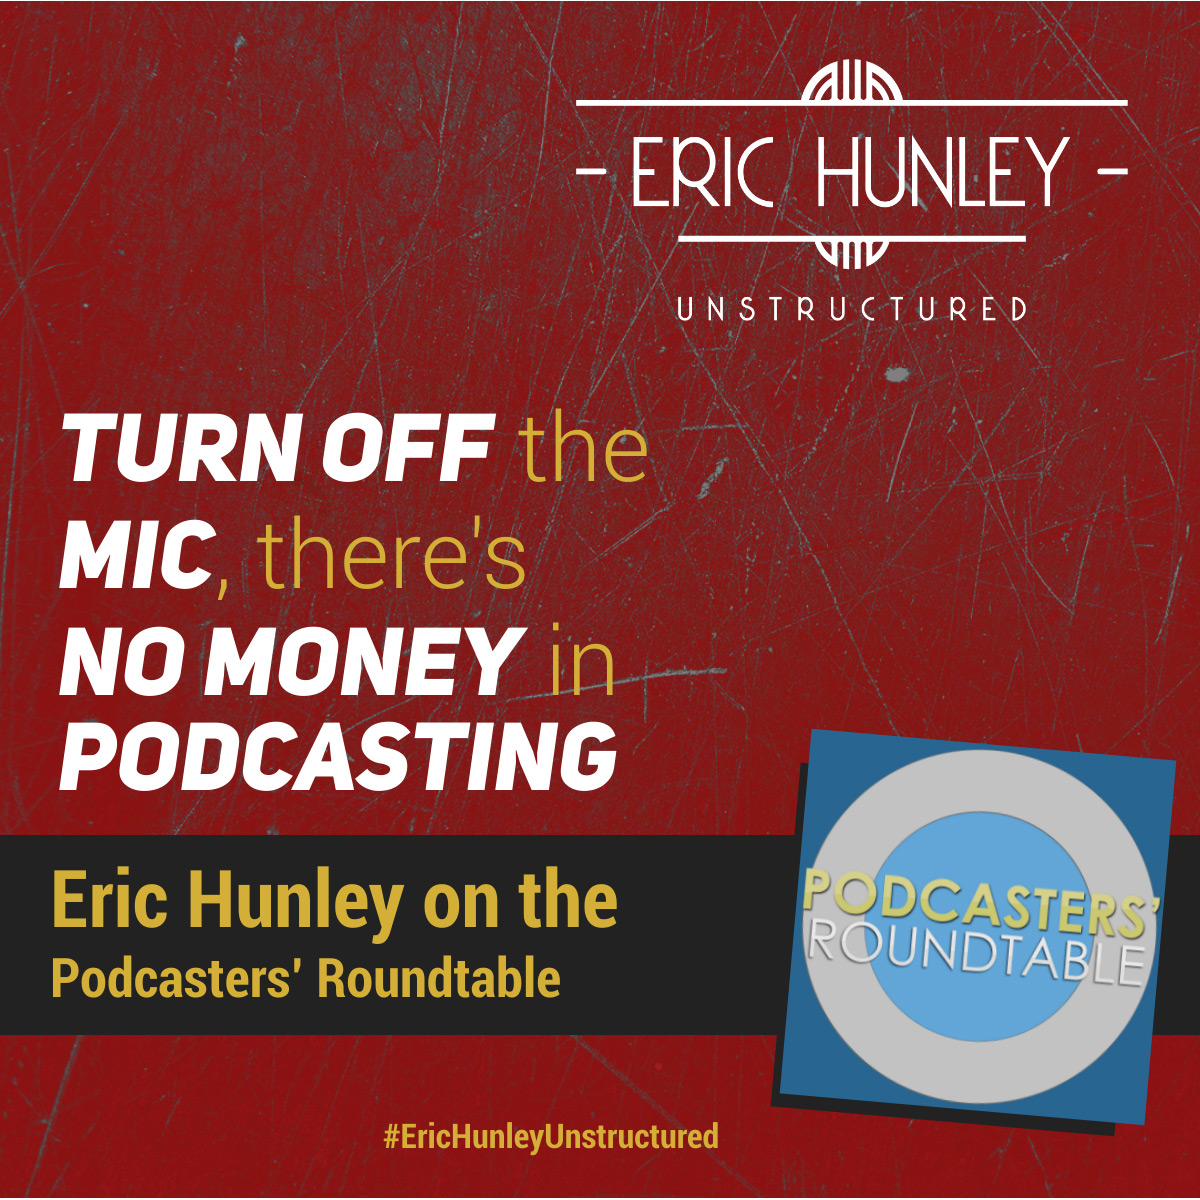 Eric Hunley Podcast Appearance Interviews - Podcasters' Roundtable Square Post